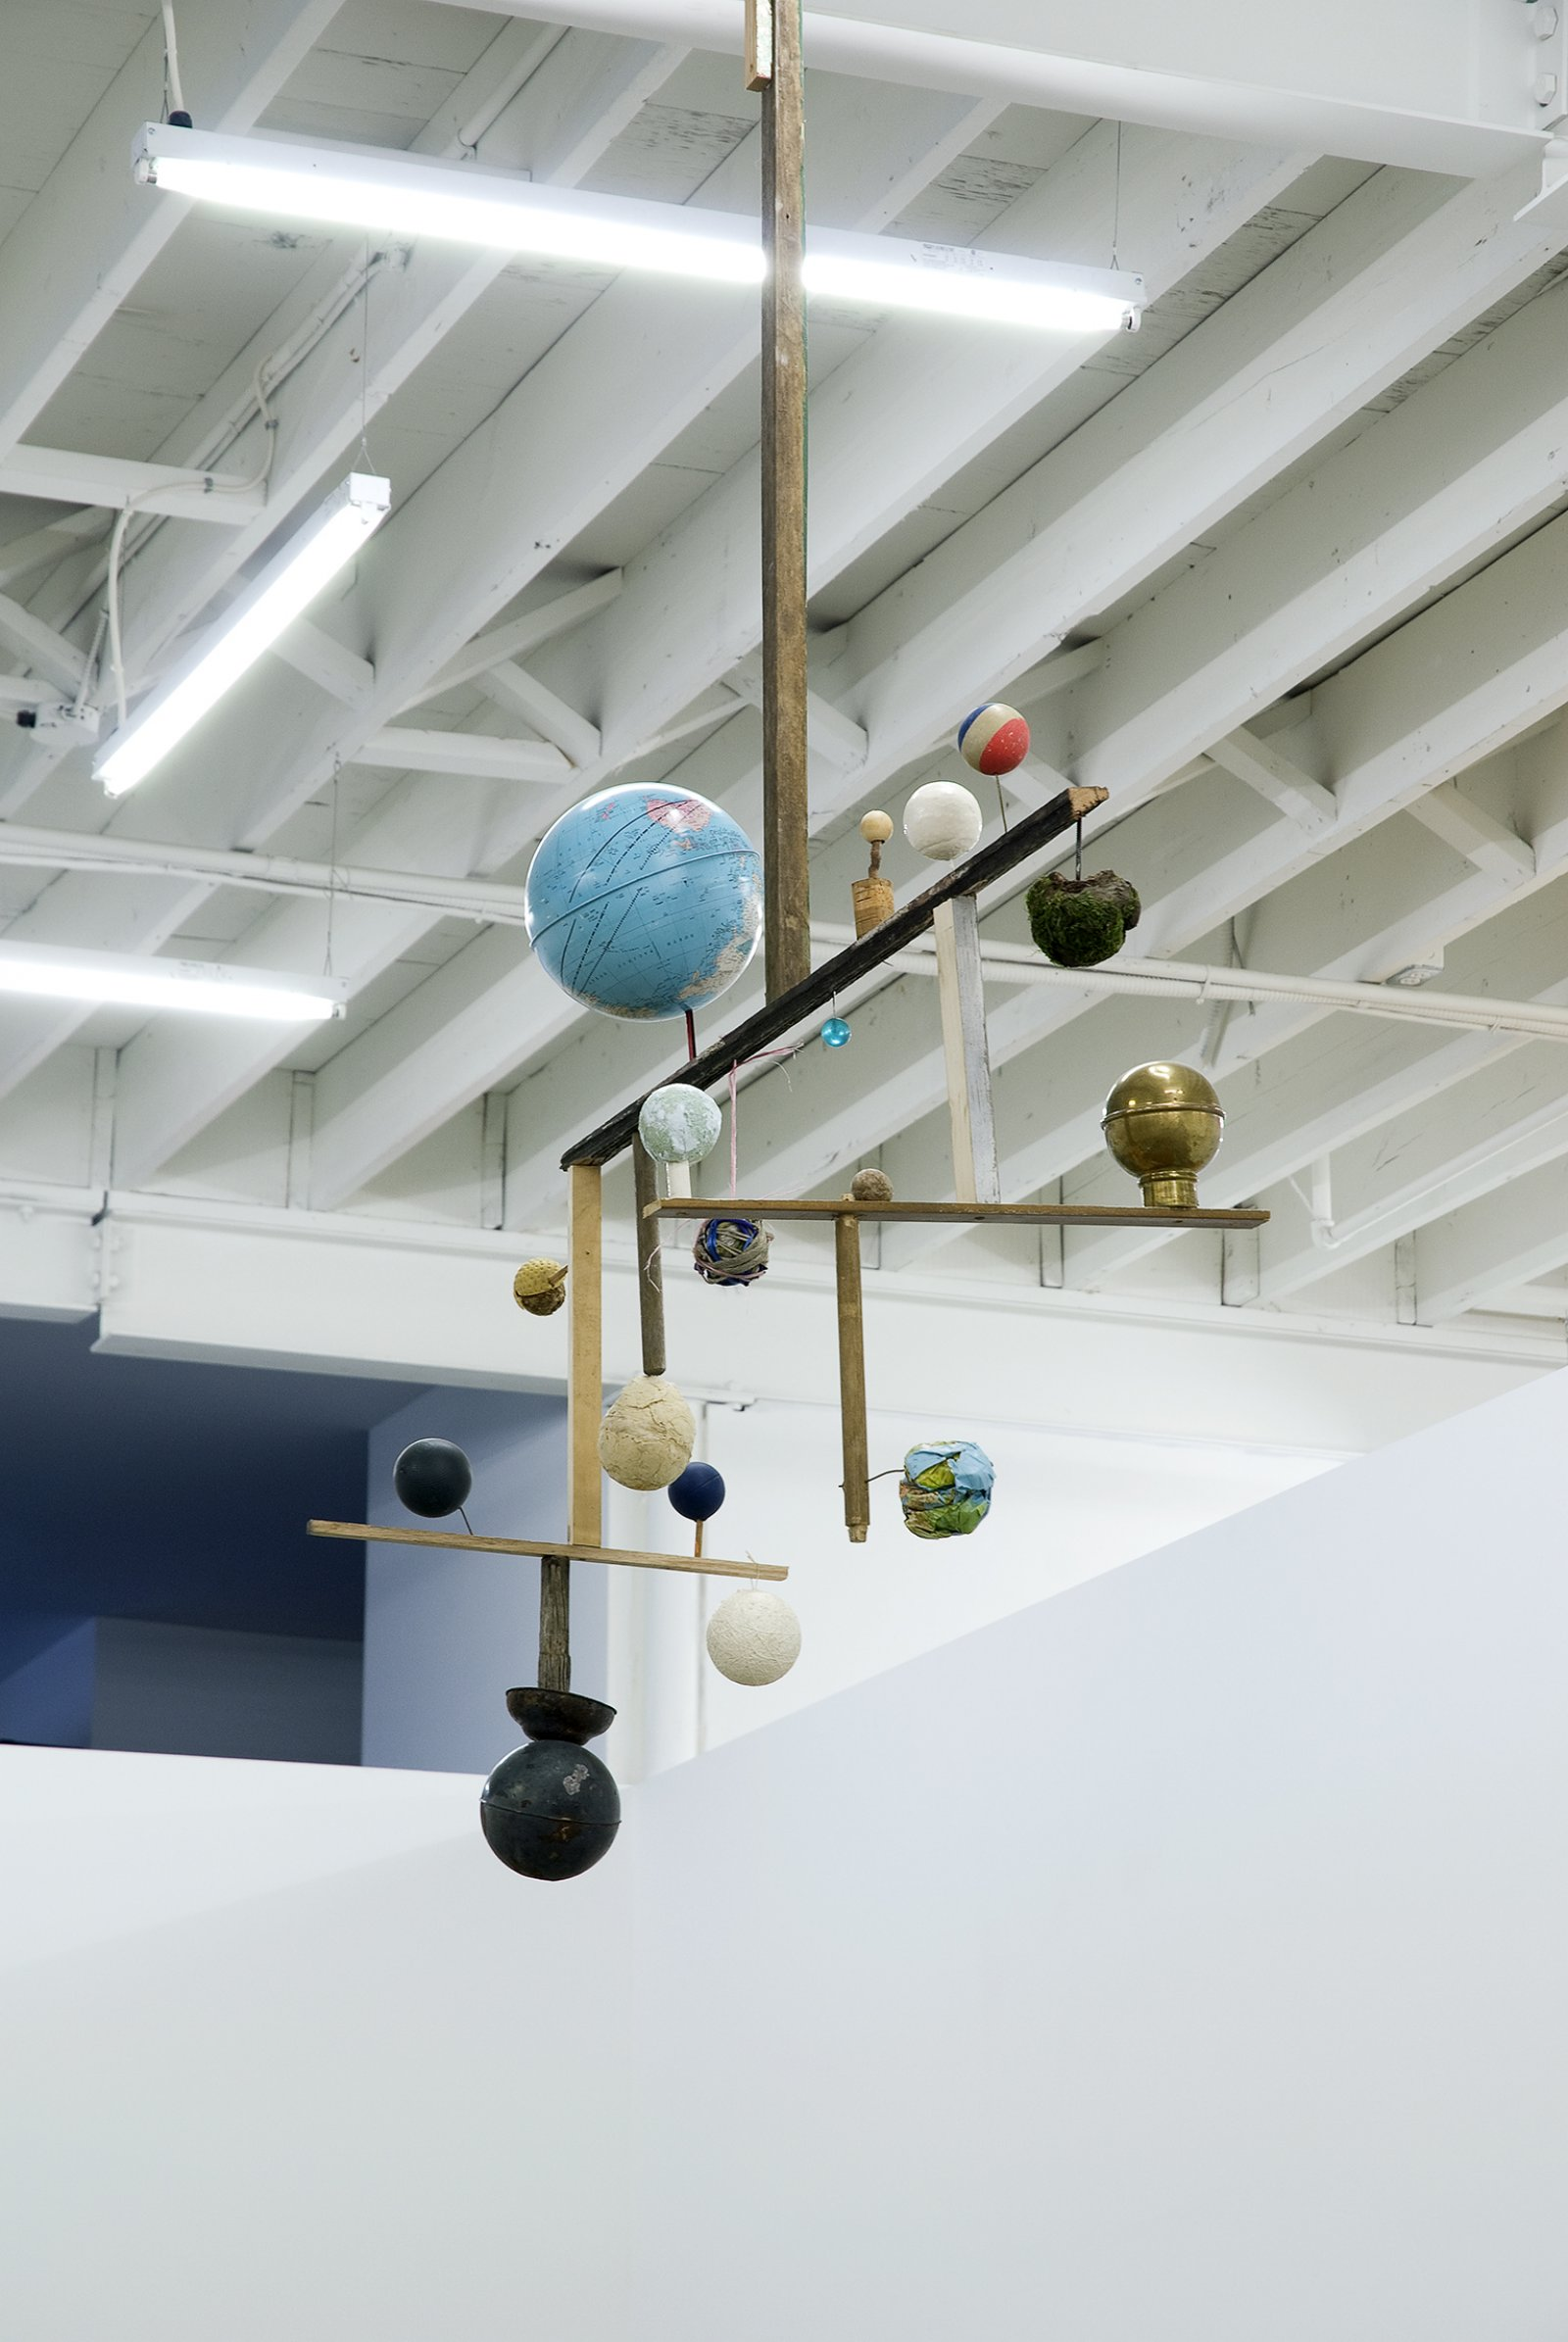 Gareth Moore, Crown Compass from Uncertain Pilgrimage, 2009, globes, balls, paint, scrap material, 103 x 22 x 54 in. (262 x 57 x 137 cm)   by Gareth Moore